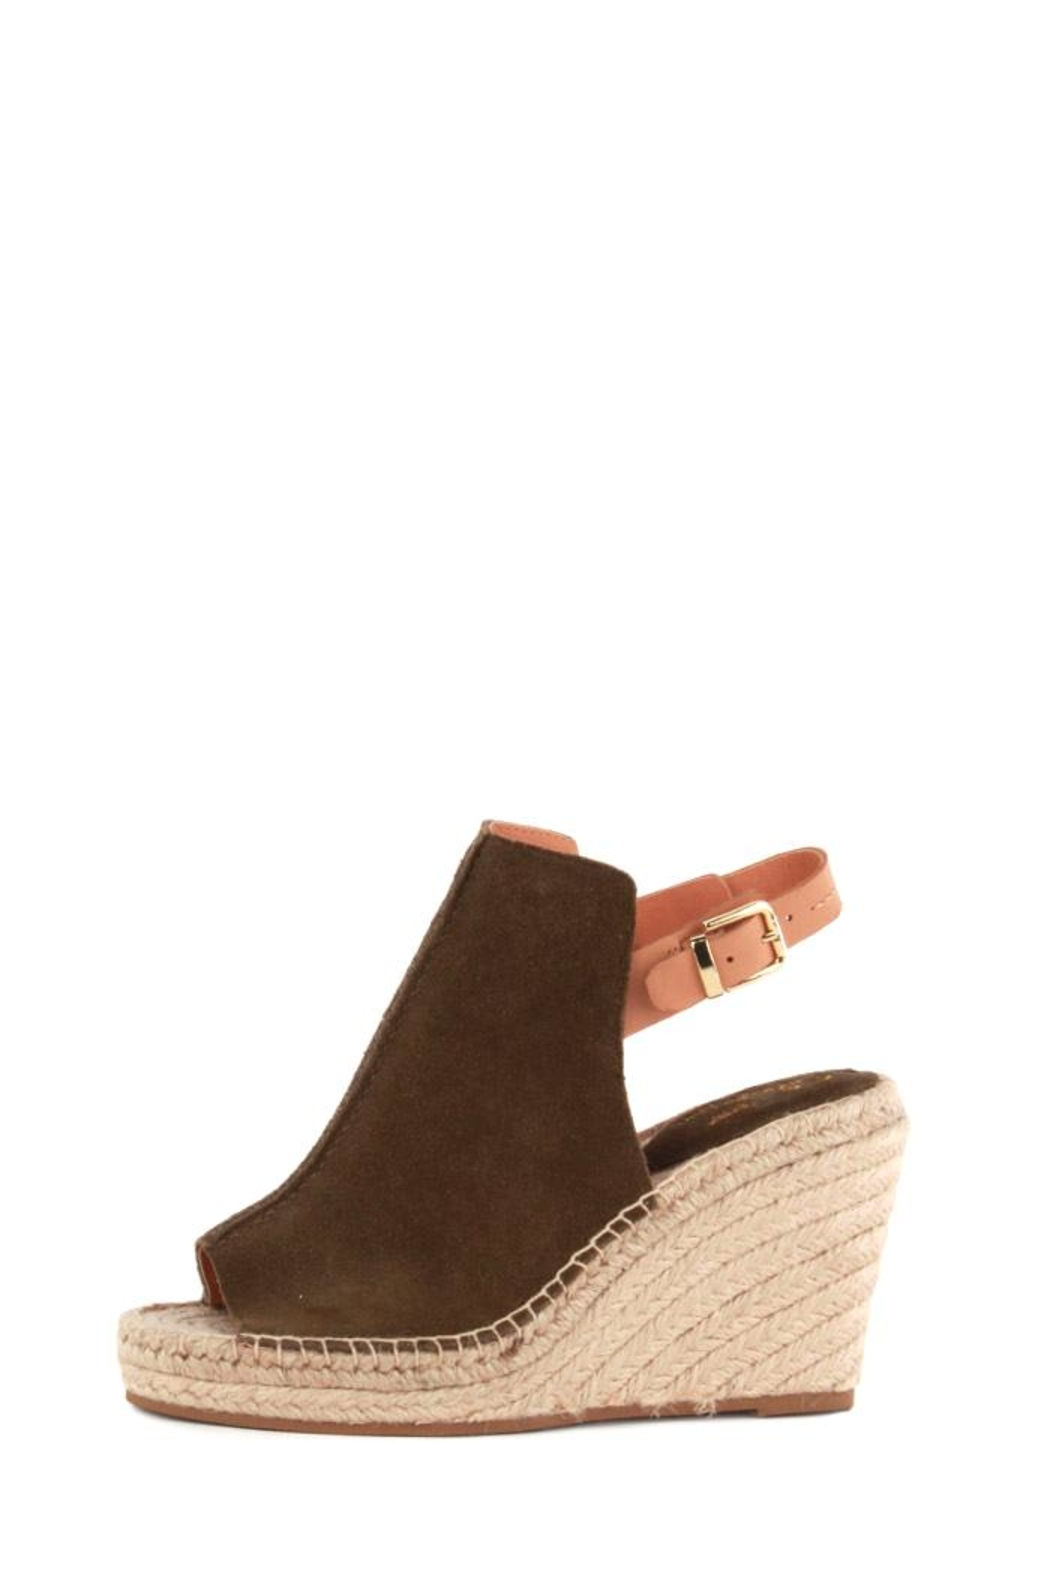 Seychelles Charismatic Suede Wedge - Main Image